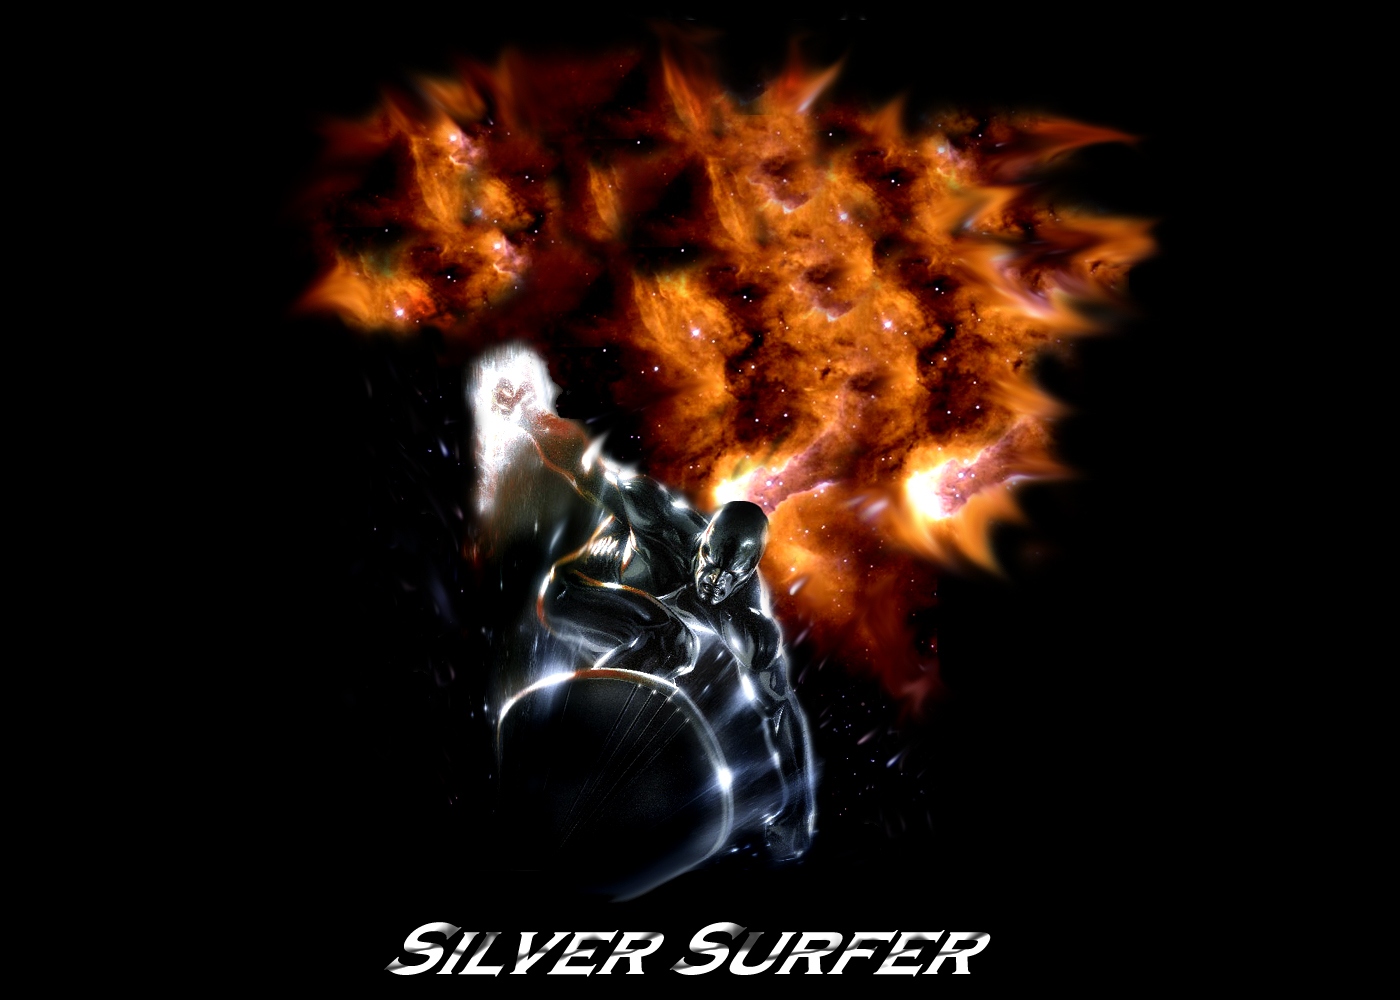 Silver surfer wallpaper 3